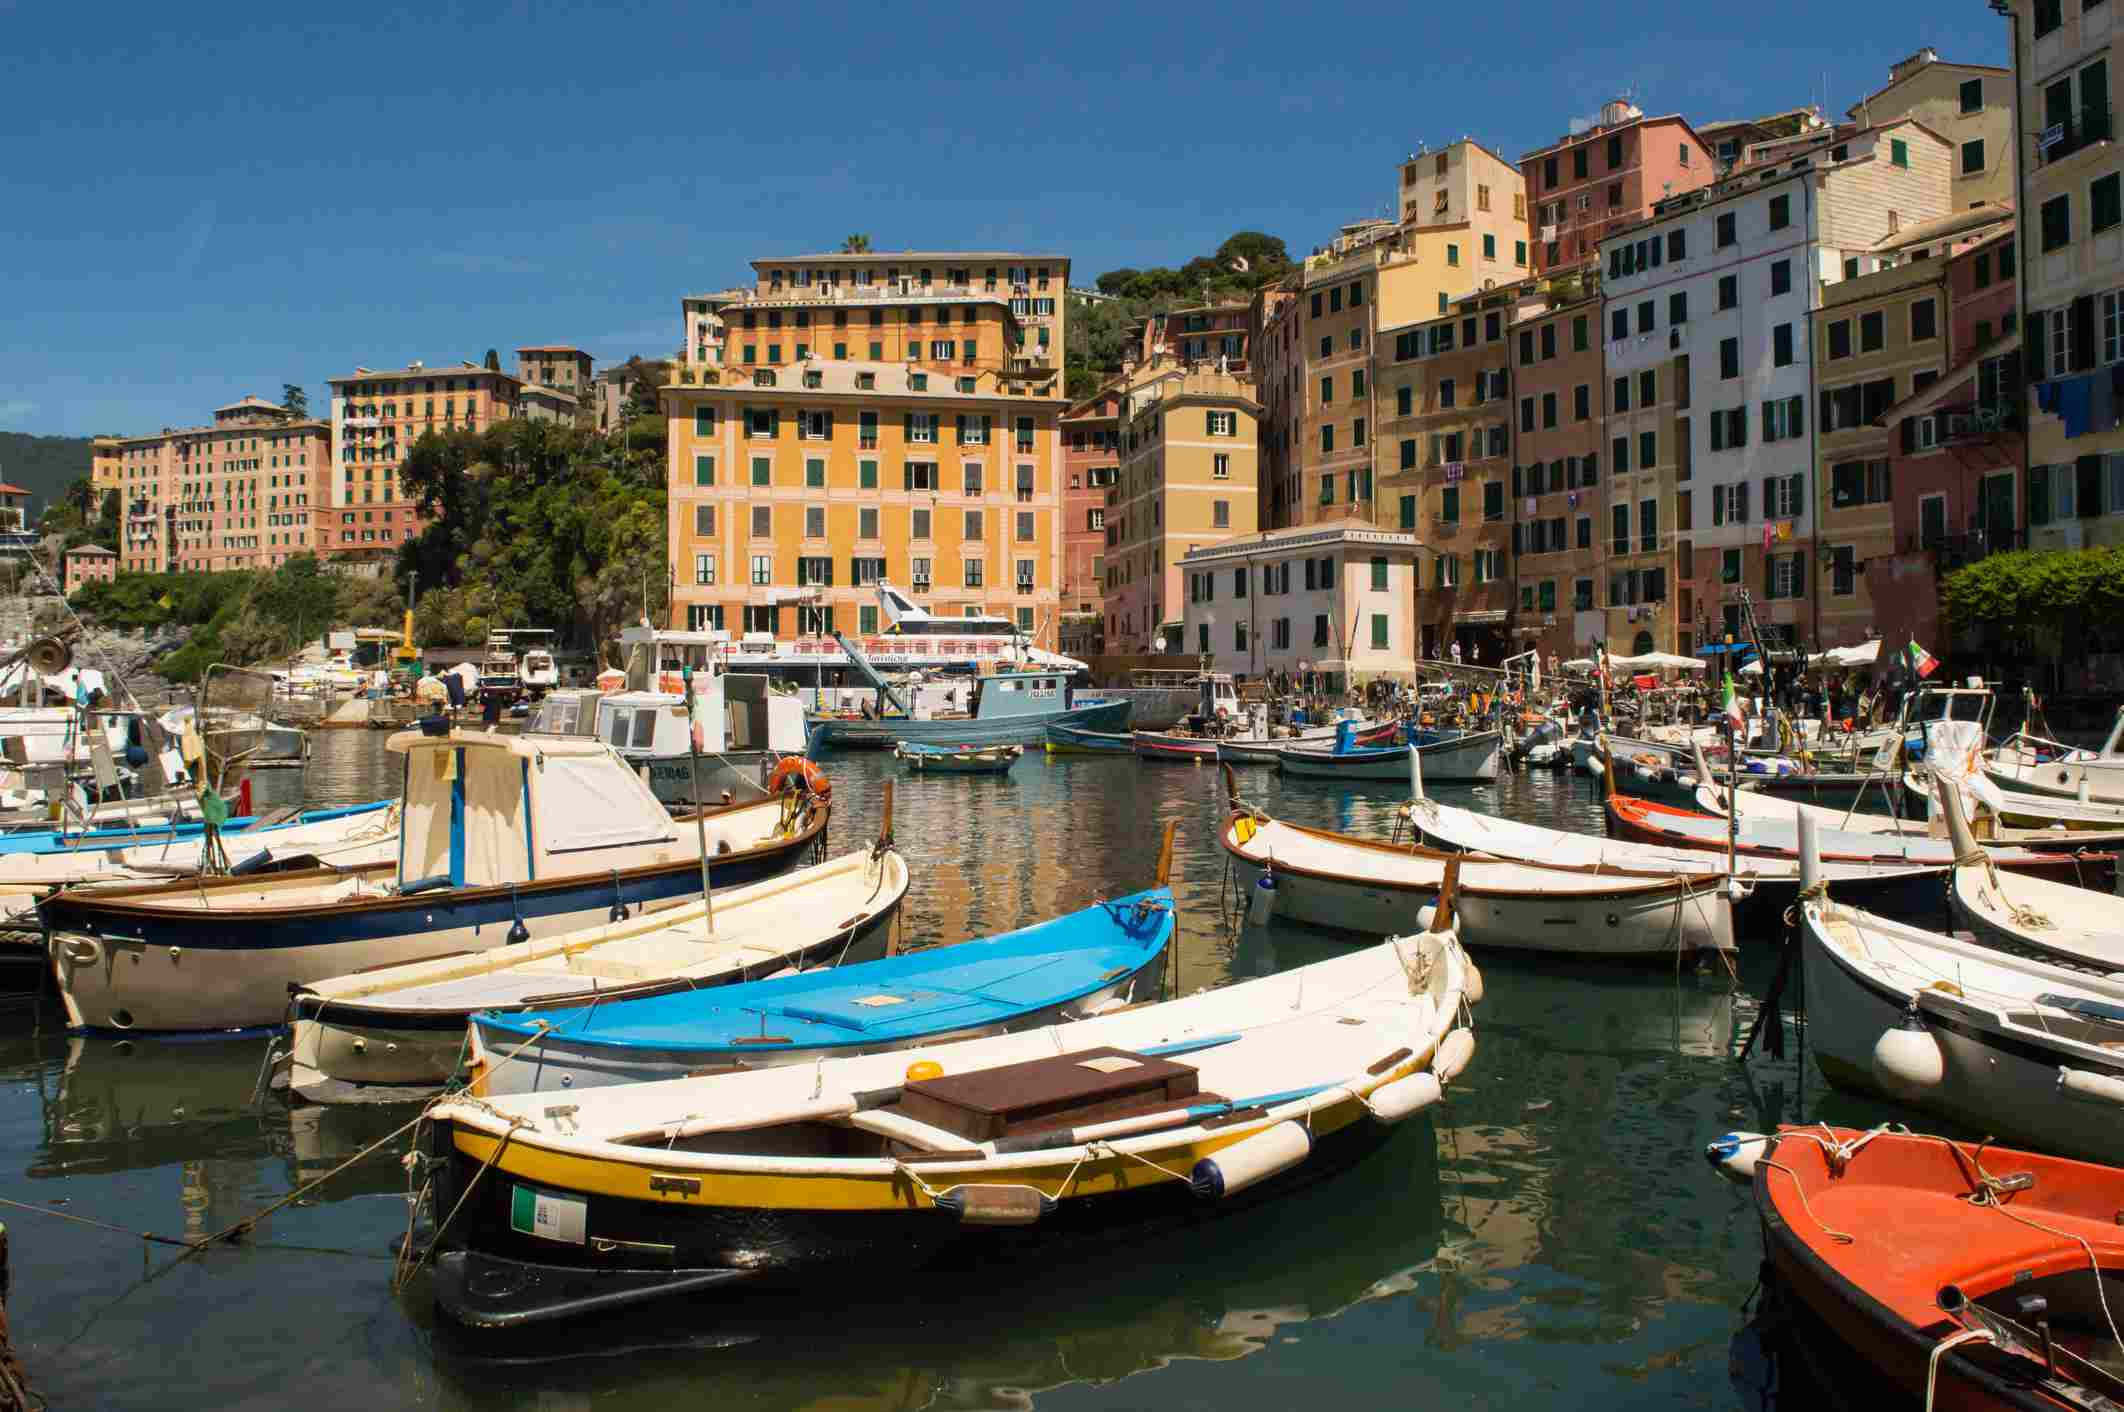 Boats moored in the harbor in Camogli, Italy